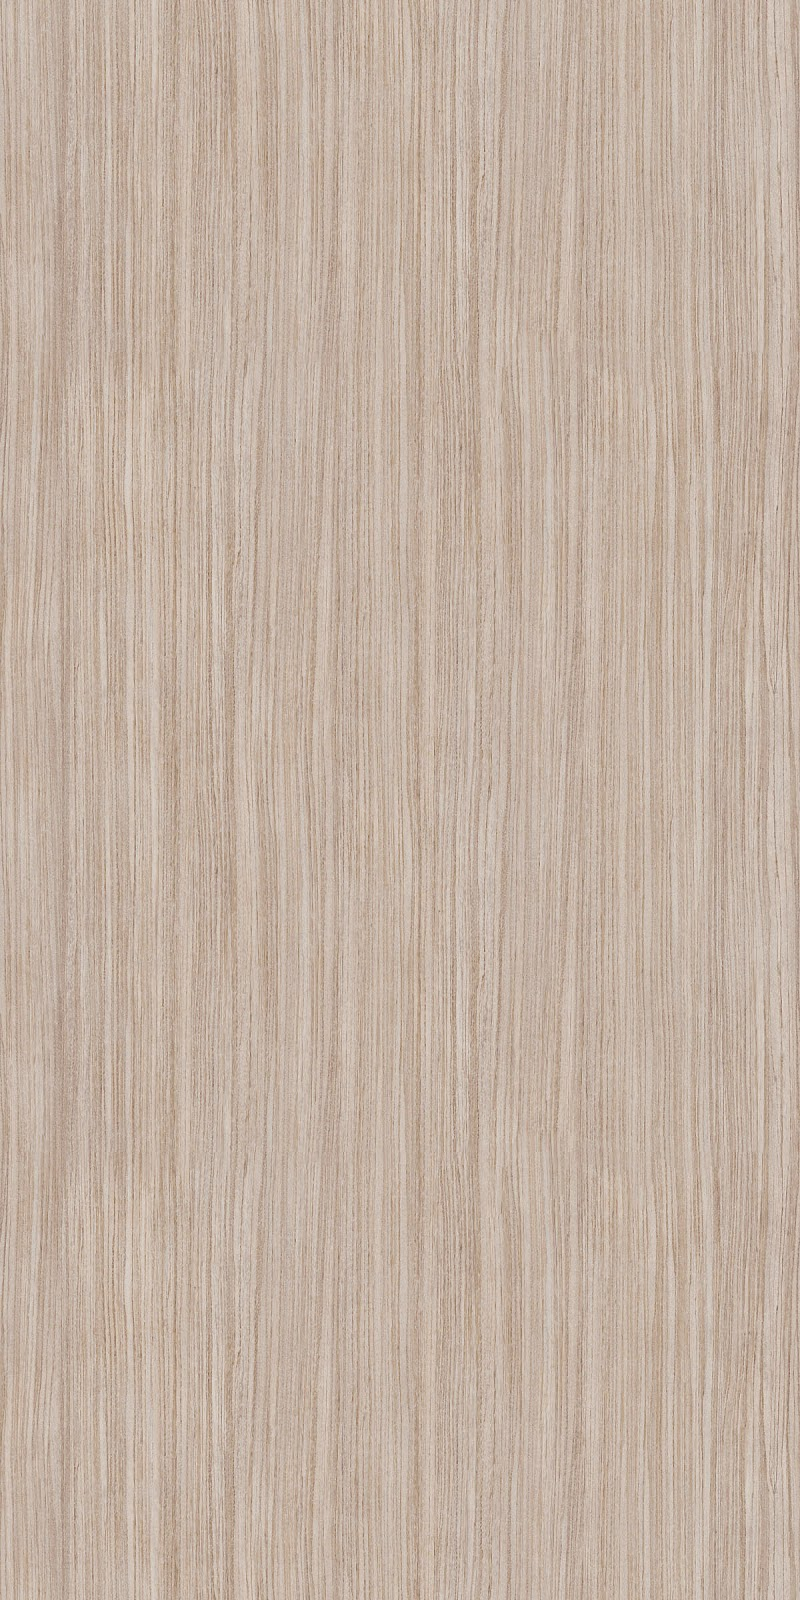 Seamless fine wood laminate texture maps texturise for 0 floor